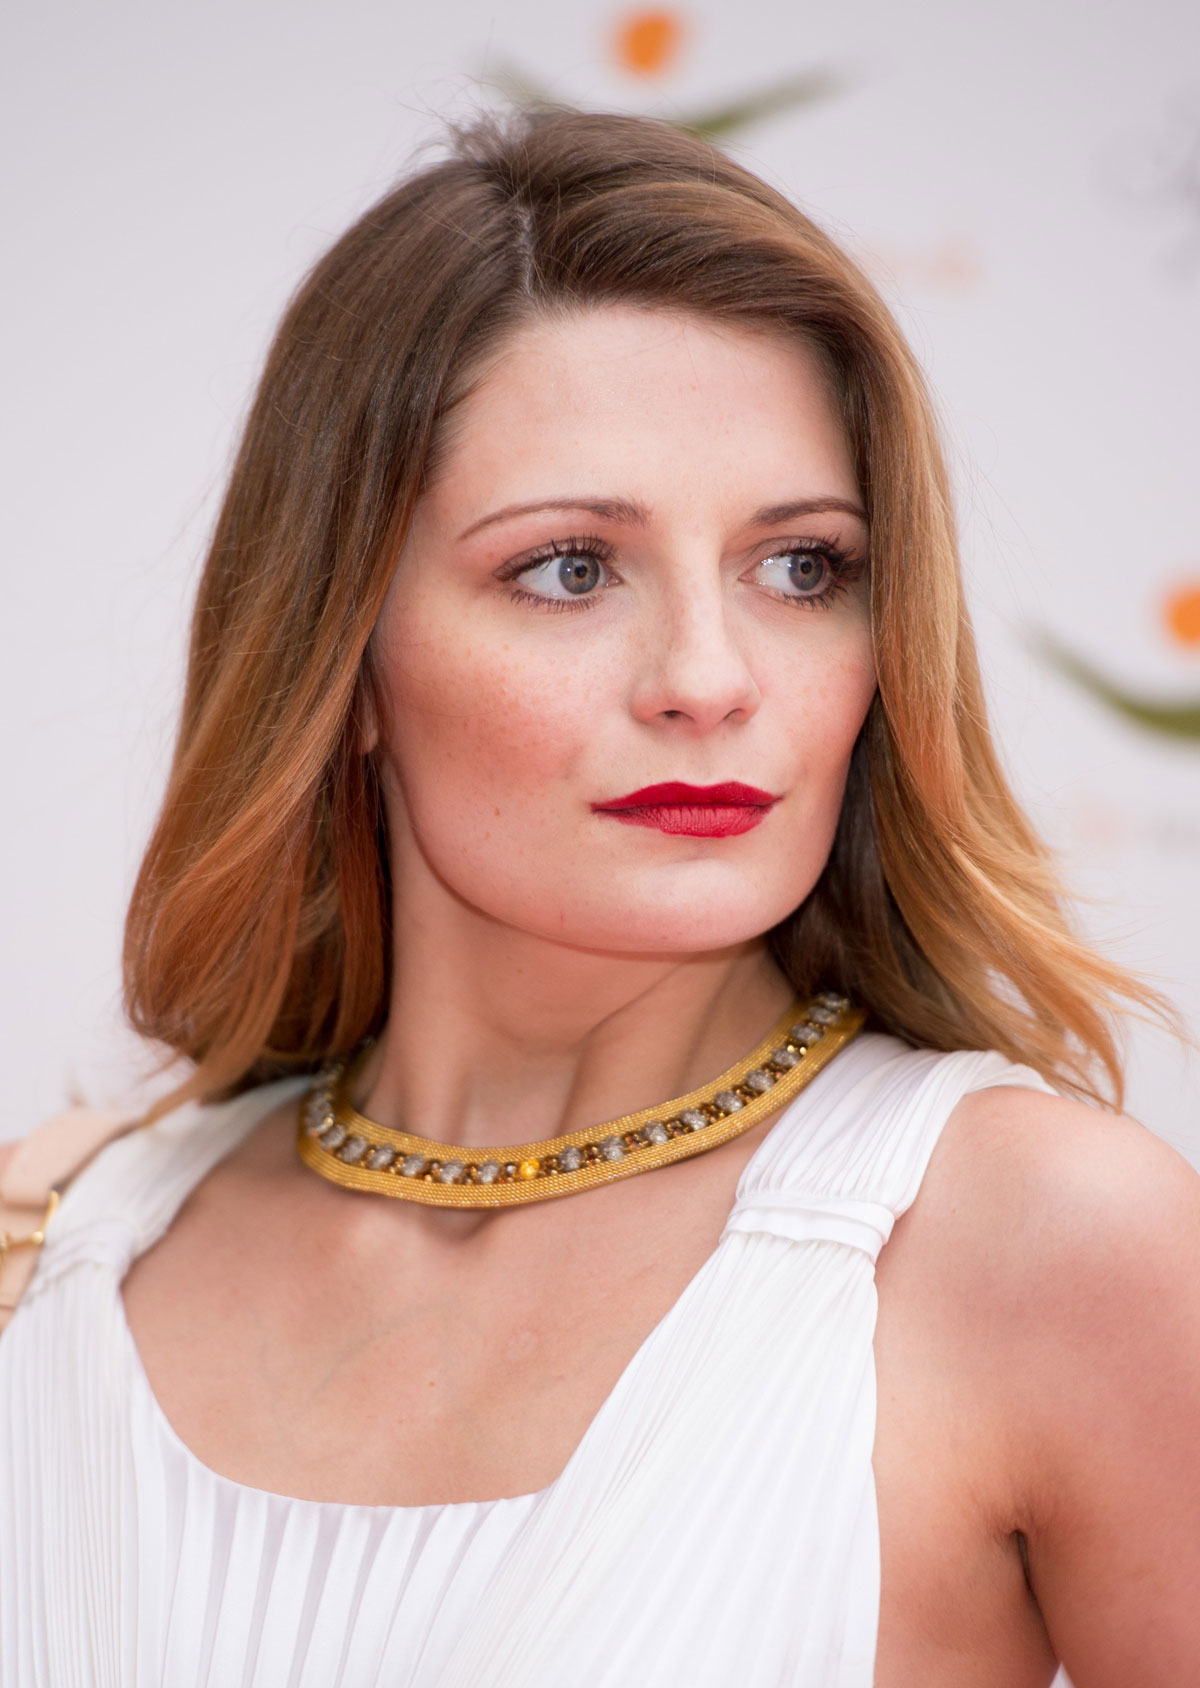 MISCHA BARTON at Women for Women International Gala Dinner in London ... Mischa Barton